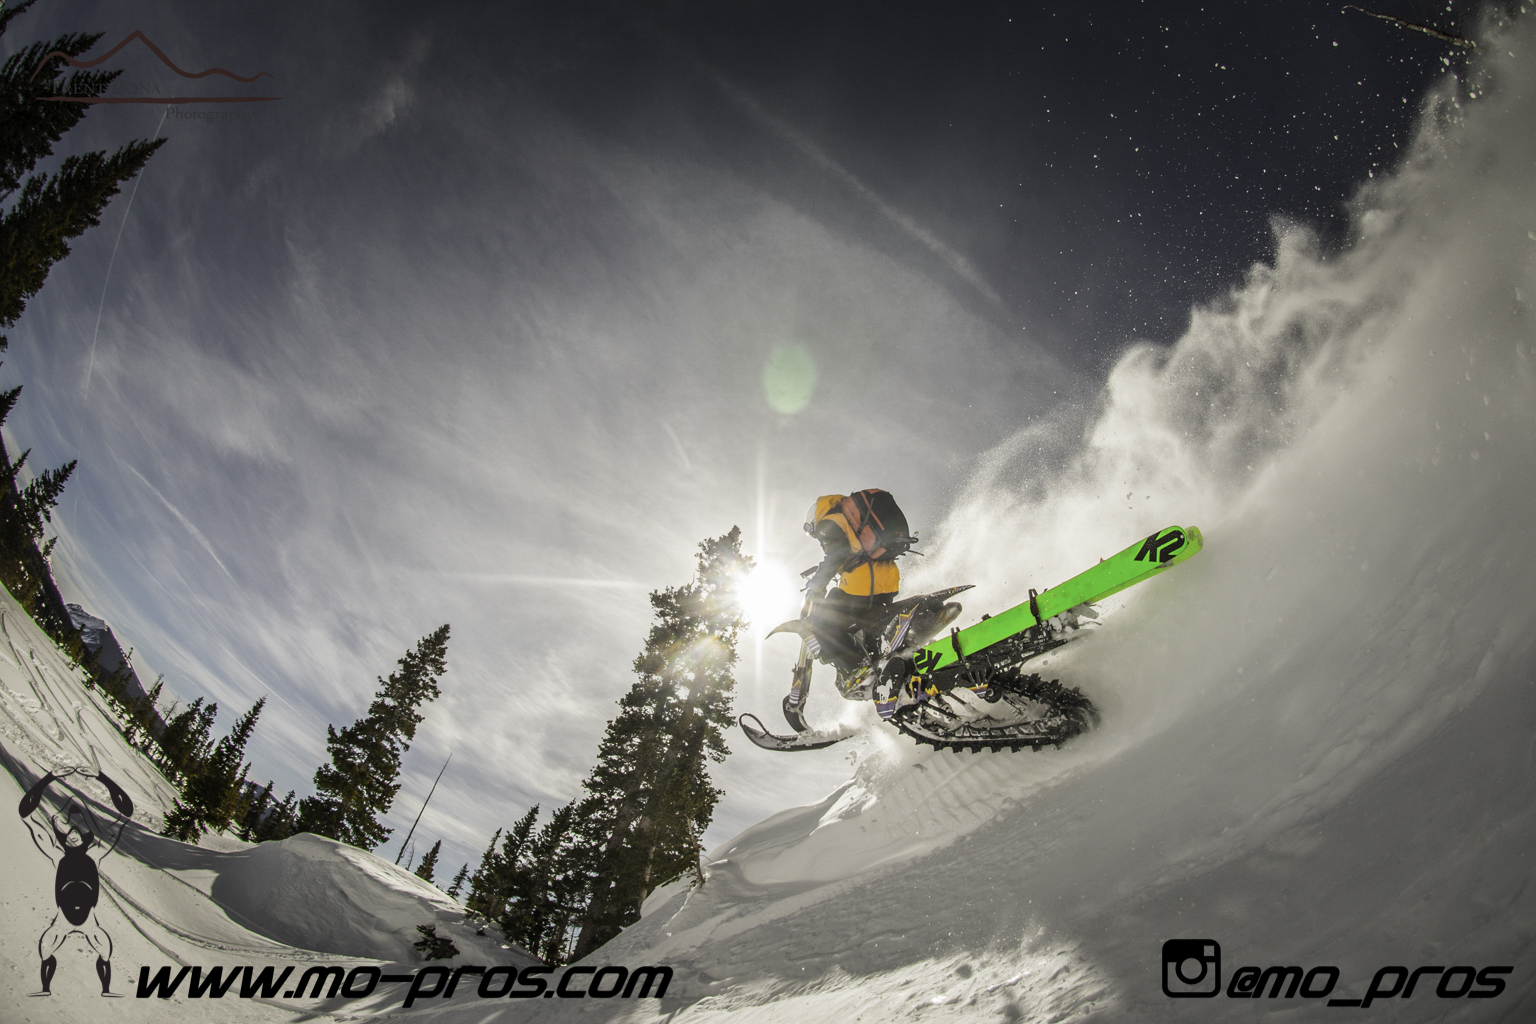 33_Backcountry _Backcountry United_CFR rack_Cheetah Factory Racing_gas Rack_Gear_Gun Rack_LinQ Snowboard Ski_Snowboard rack_snowboard_Snowboarding_snowmobile bag_Snowmobile_timbersled bag_Timbersled .jpg